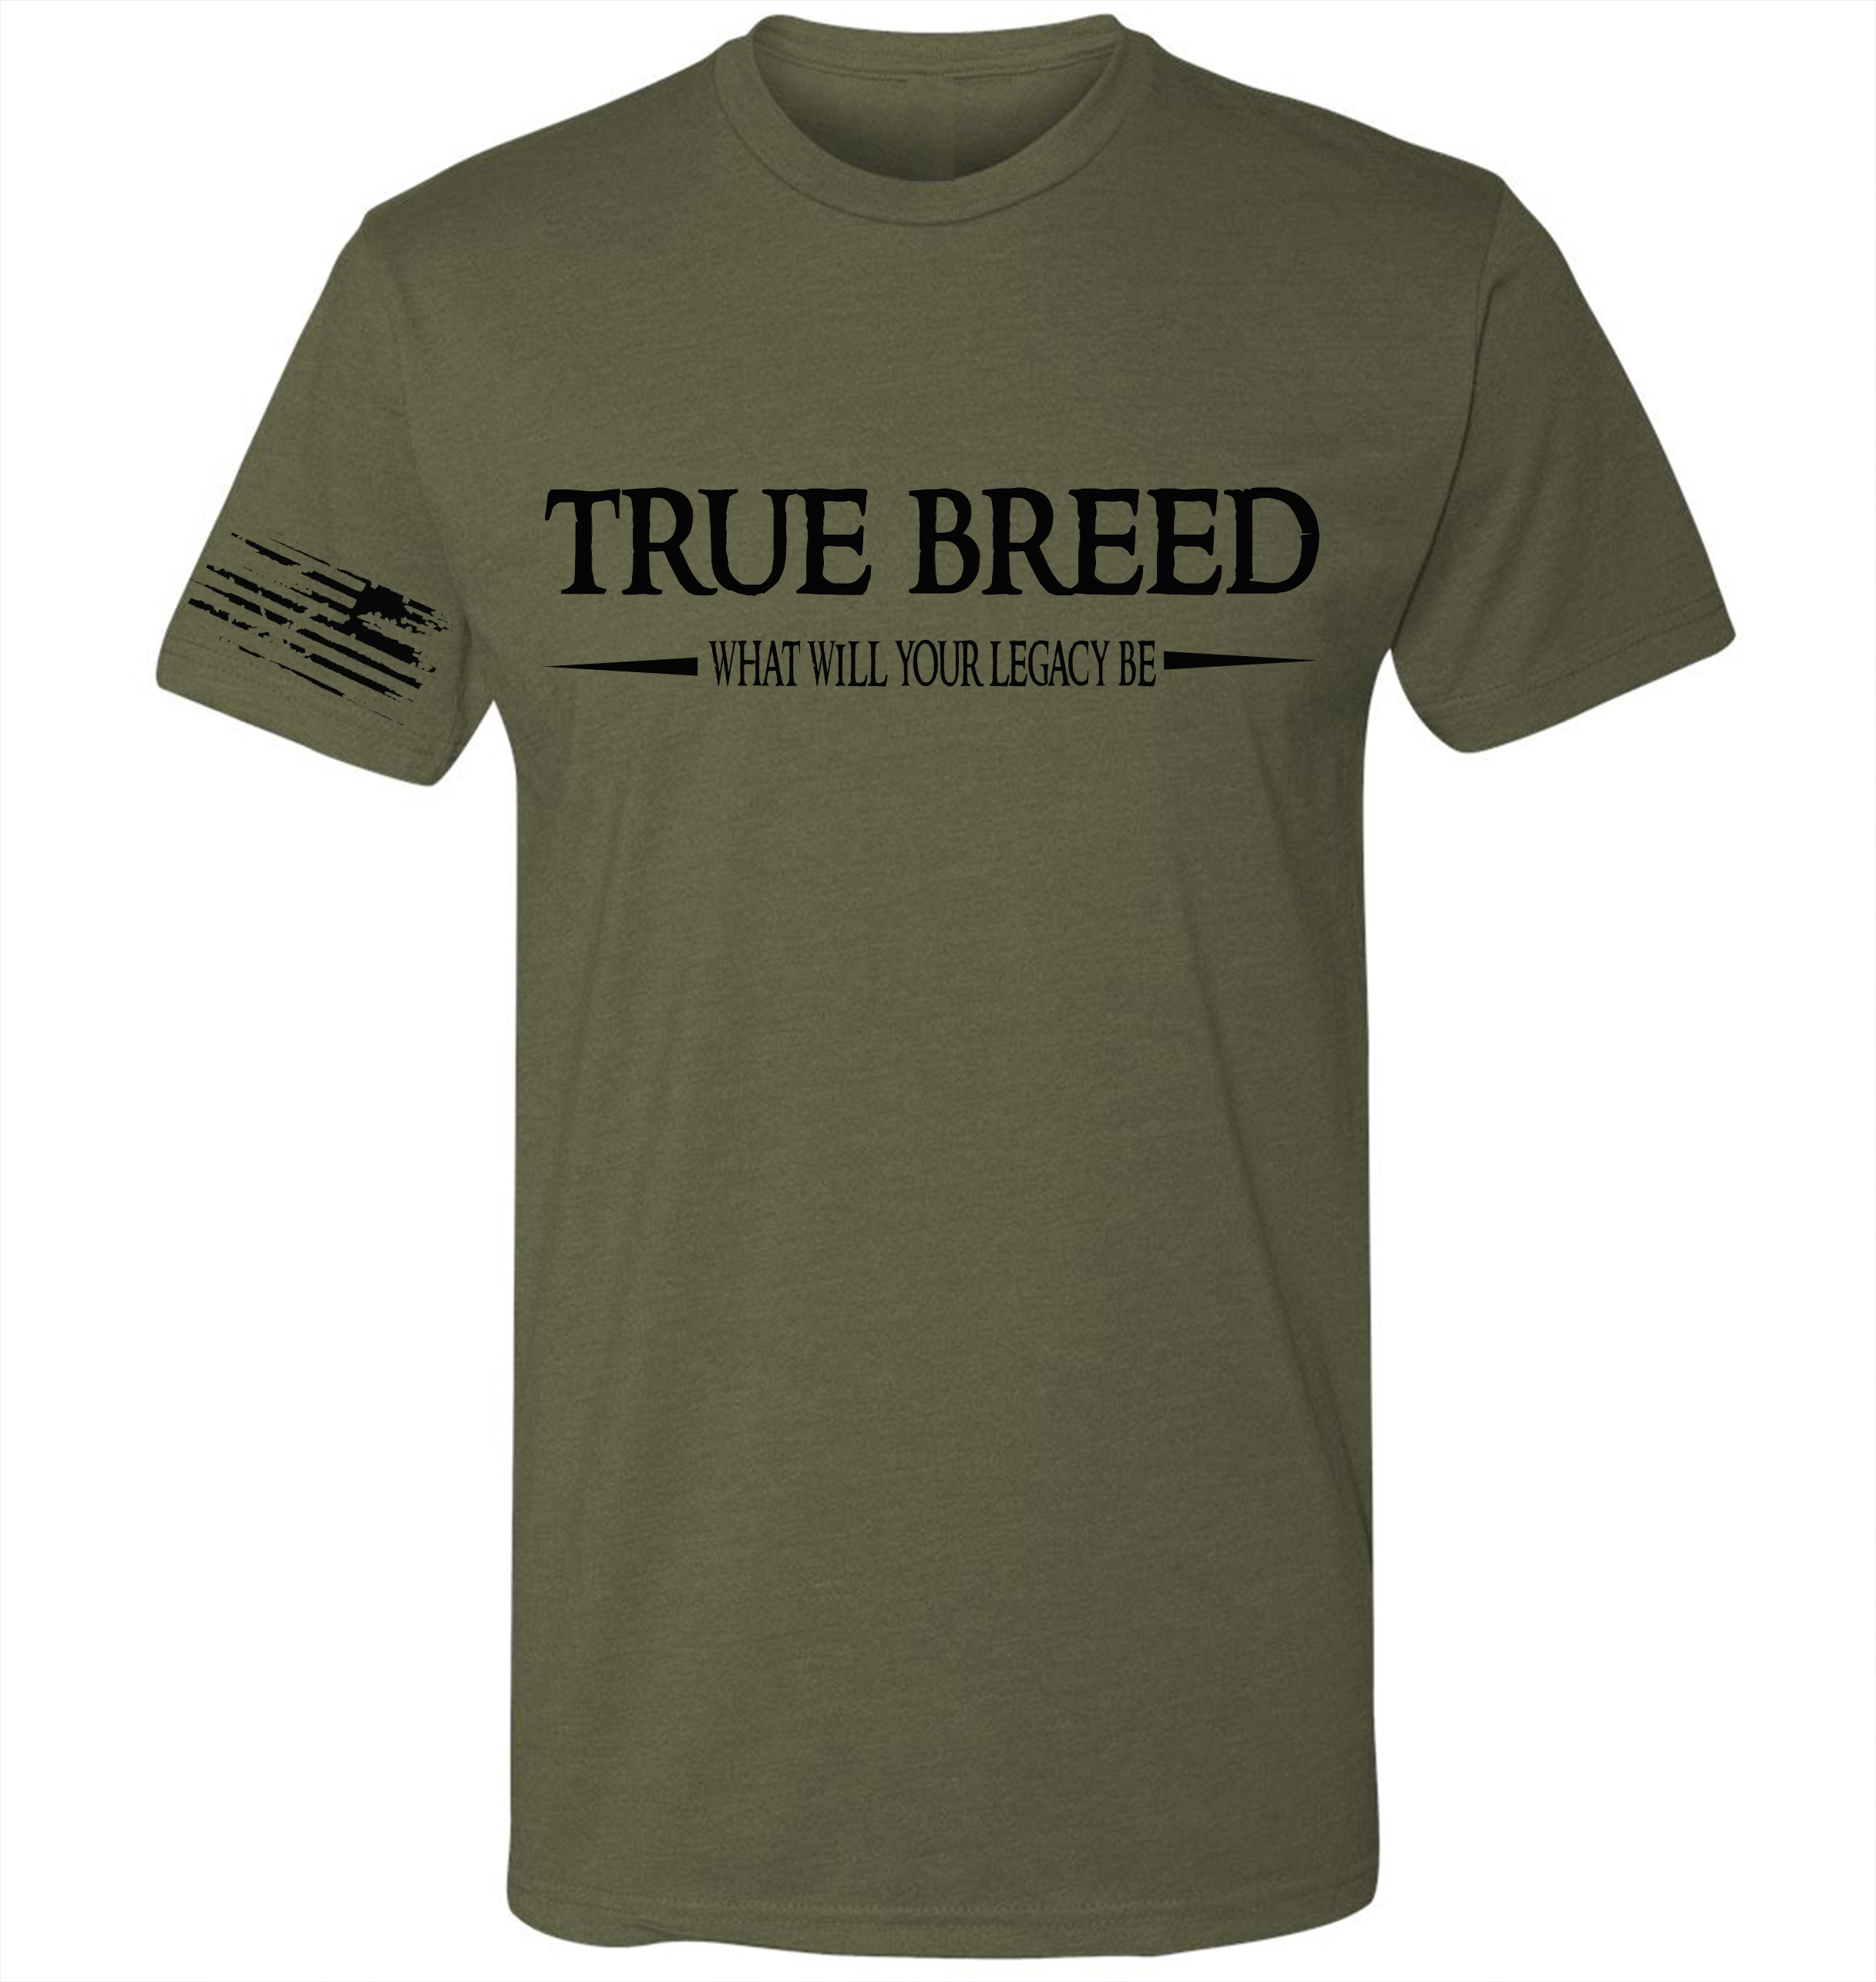 I AM TRUE BREED - Military Green